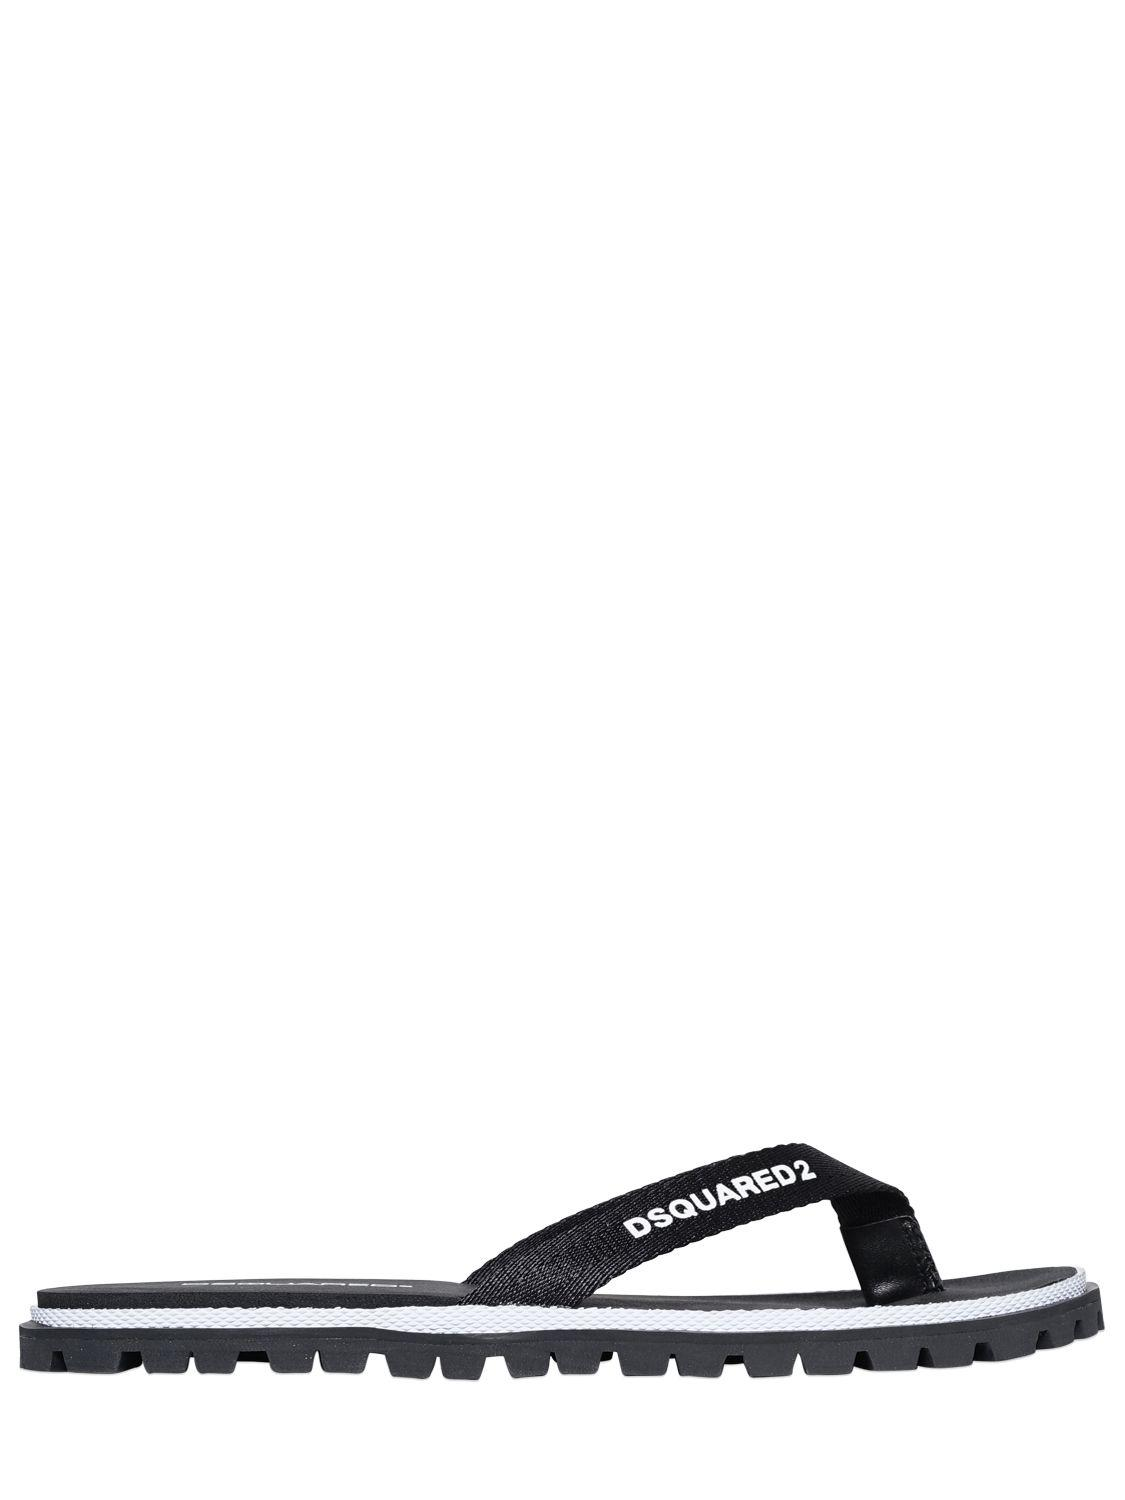 bd71459b2 Lyst - DSquared² Logo Printed Nylon Flip Flops in Black for Men